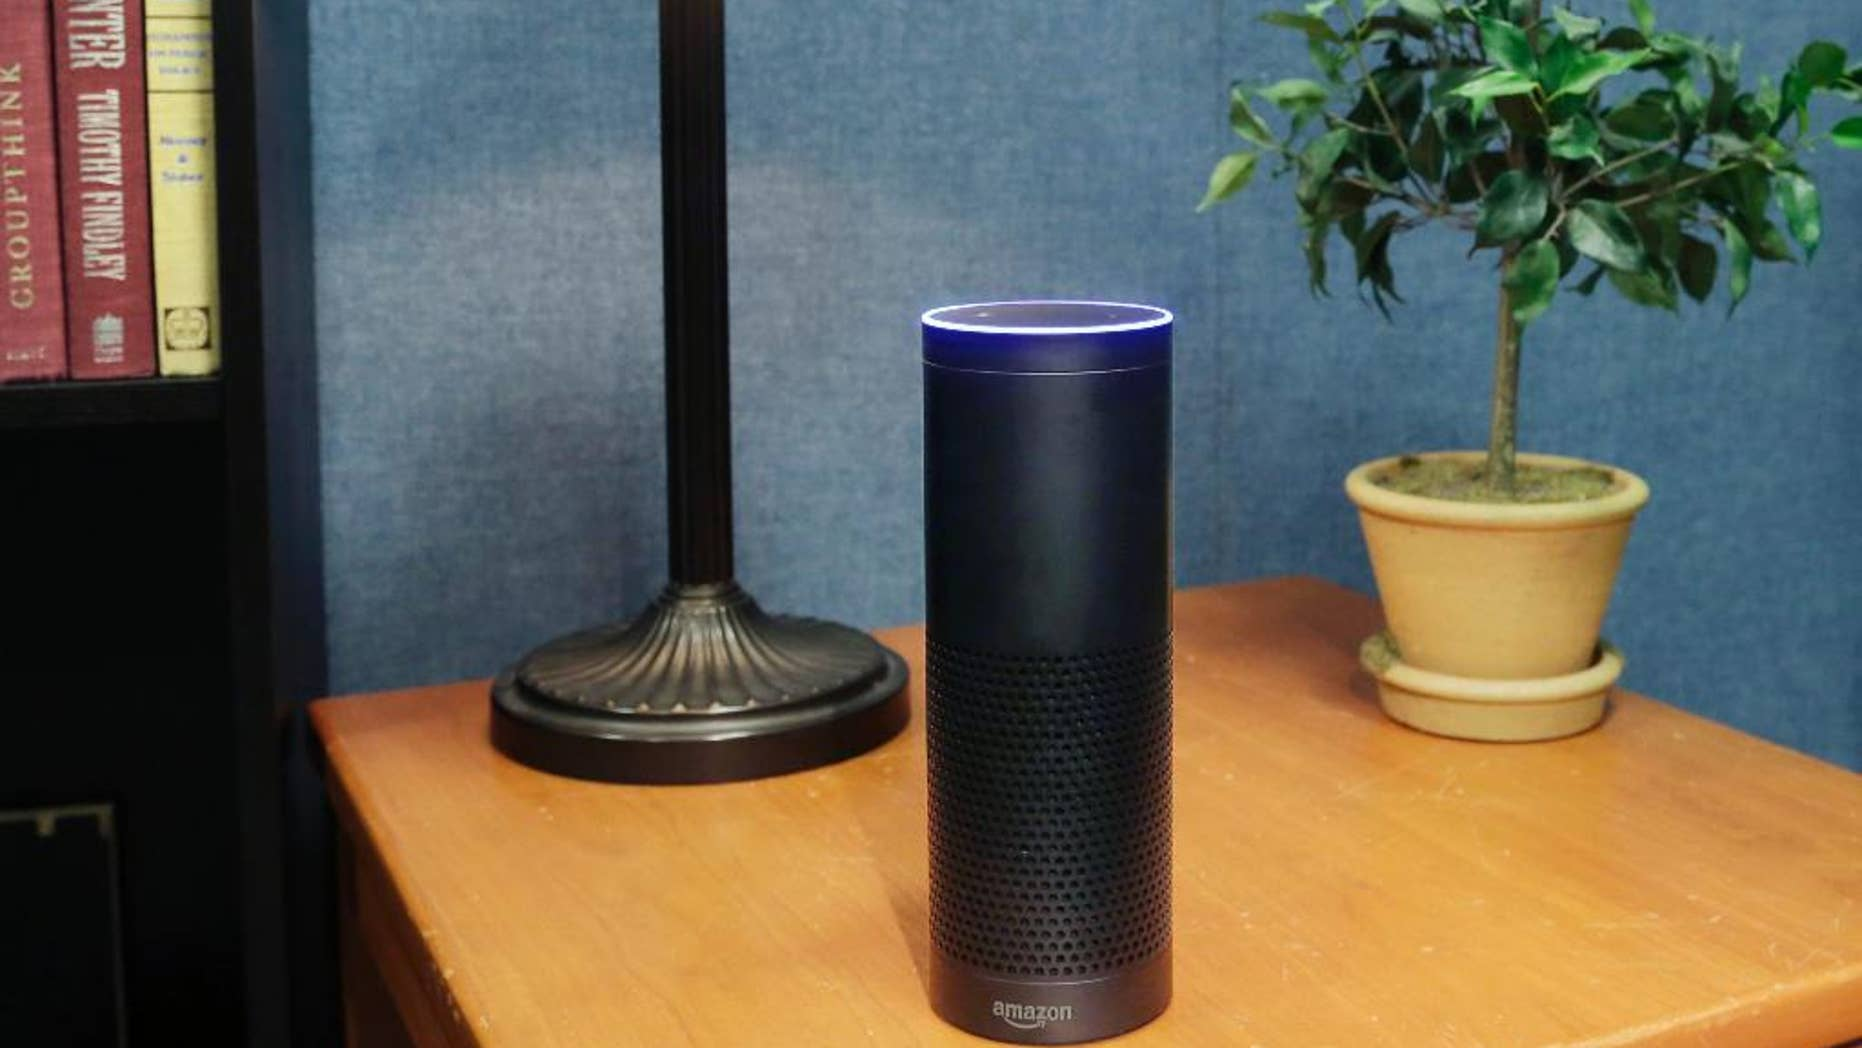 FILE - This July 29, 2015, file photo made in New York shows Amazon's Echo, a digital assistant that continually listens for commands such as for a song, a sports score or the weather. (AP Photo/Mark Lennihan, File)